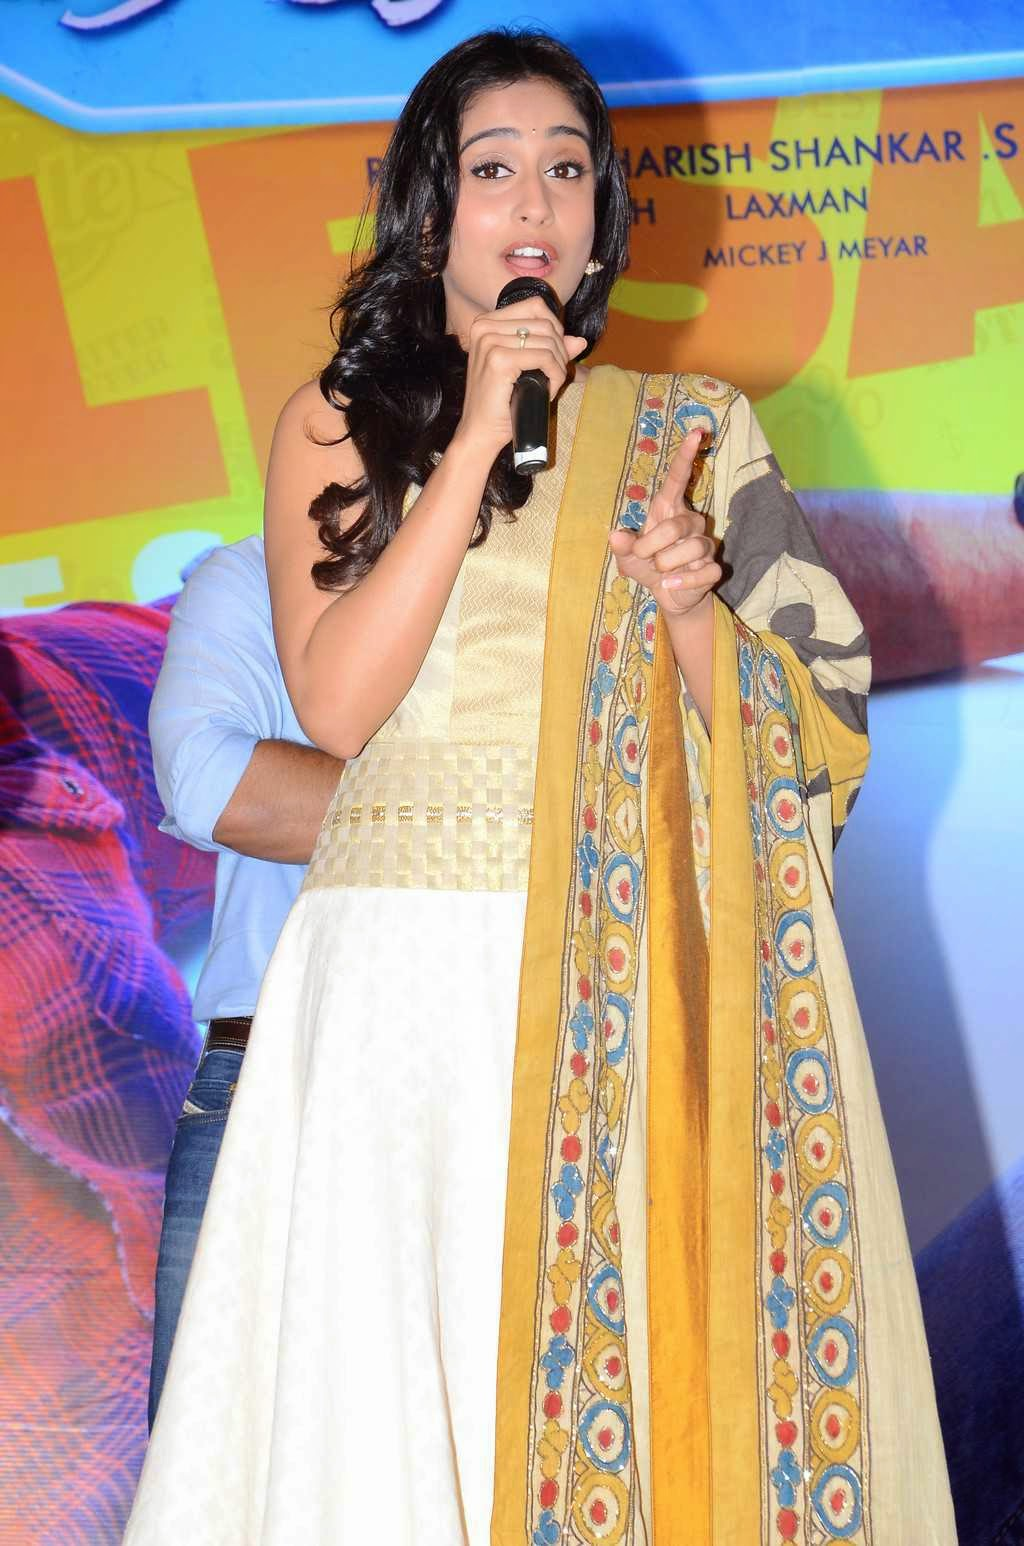 Actress Regina Cassandra Latest Cute Hot Exclusive Beautiful Yellow Dress Spicy Photos Gallery At Subramanyam For Sale Telugu Movie Press Meet (22)